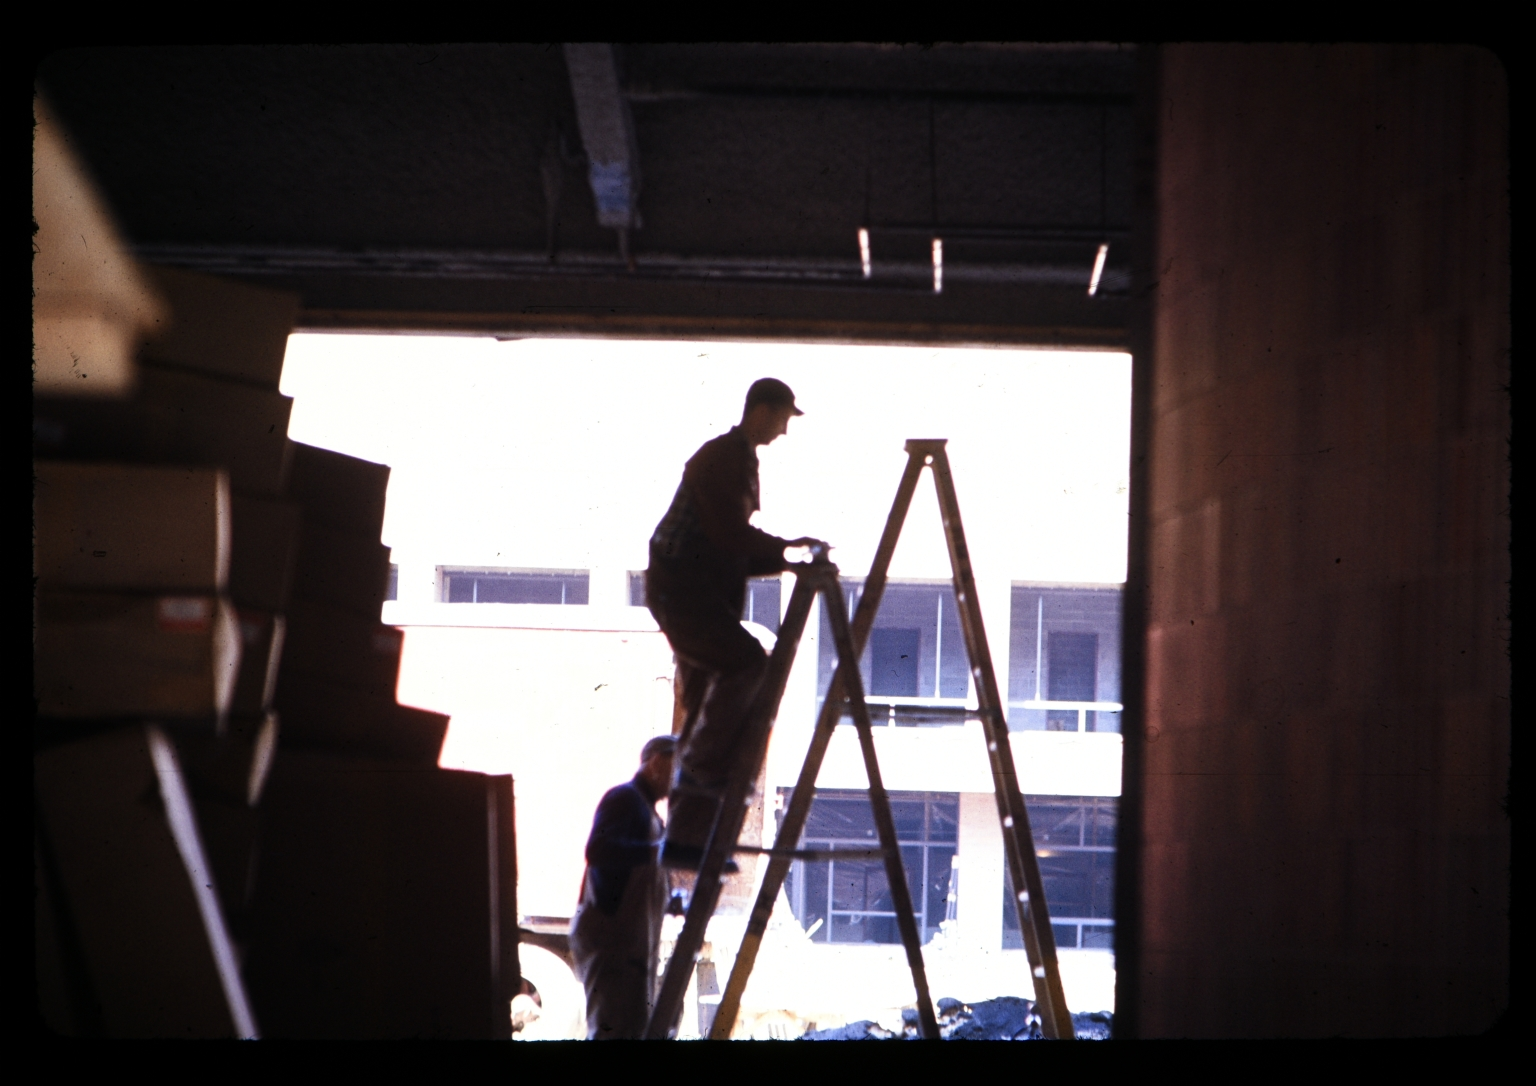 Construction workers on ladders